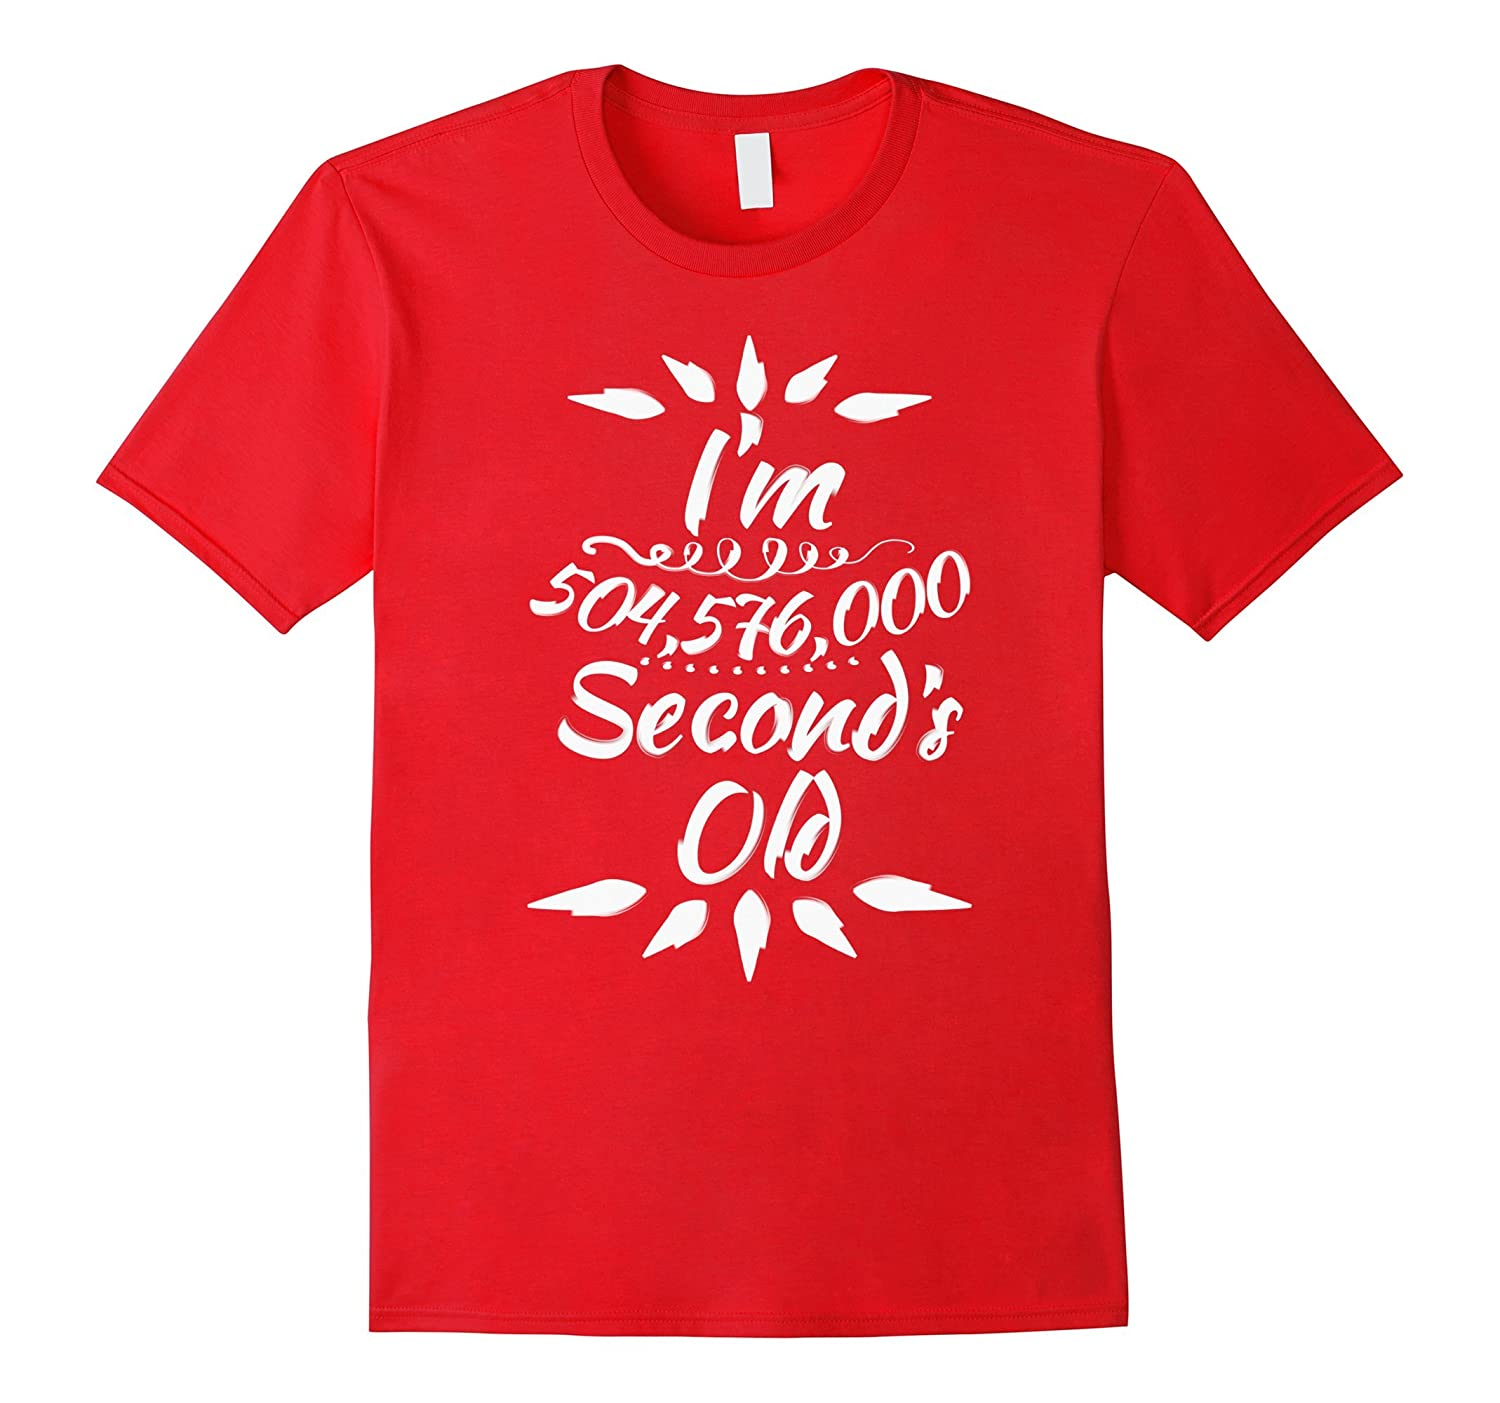 Cool Birthday t shirt for 16 years old birthday party Maths